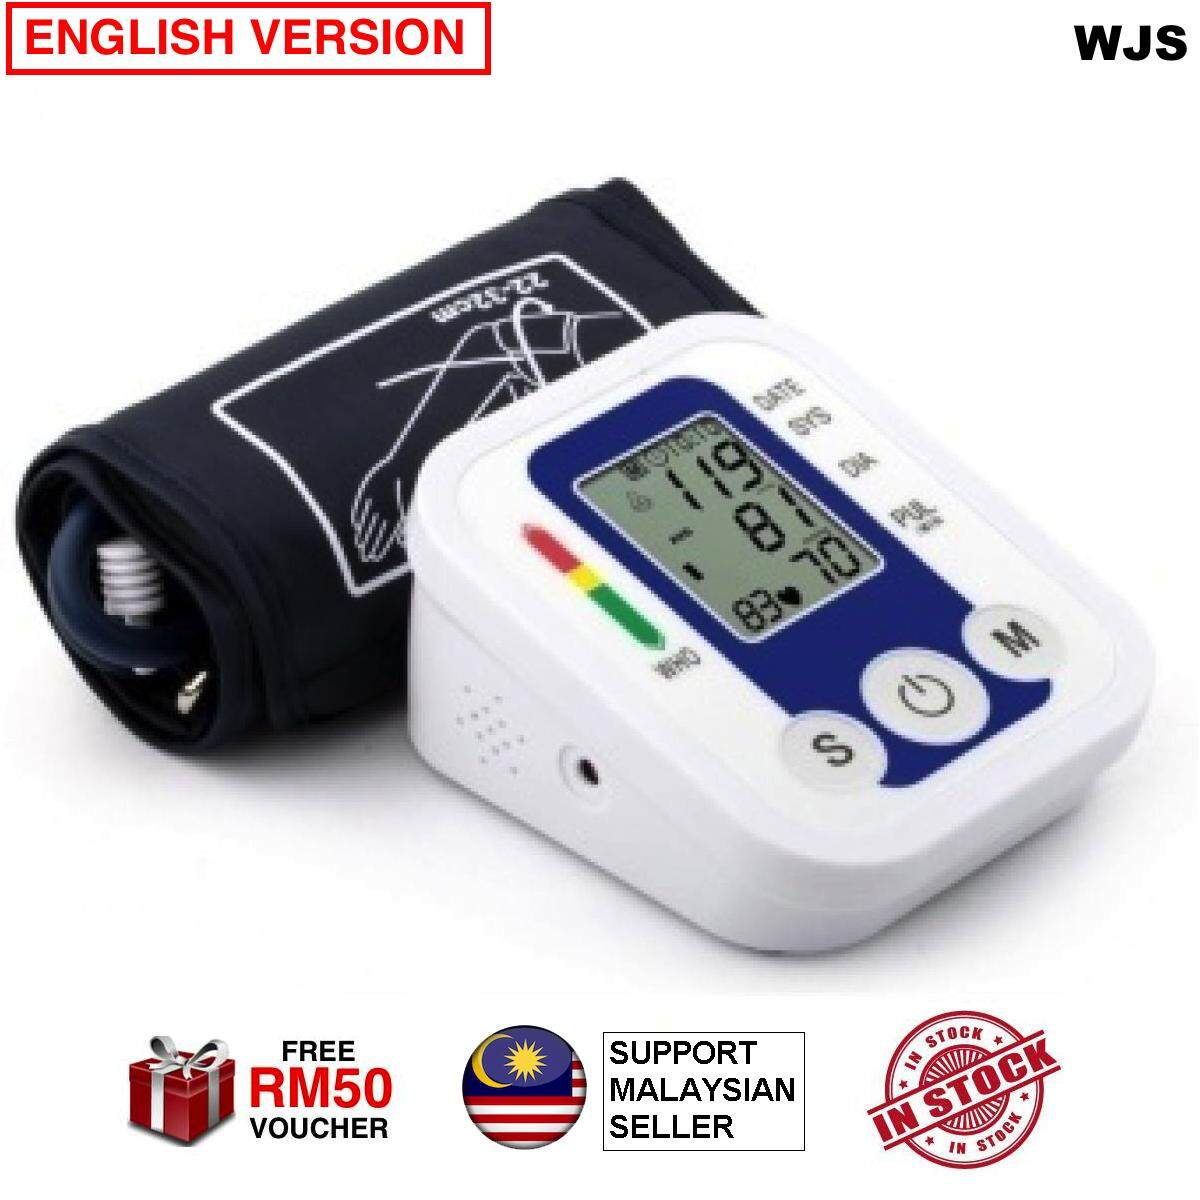 (ENGLISH VERSION) WJS Arm Blood Pressure Monitor LCD Heart Beat Home Sphygmomanometer Heart Monitor Micro USB Powered Blue White [FREE RM50 VOUCHER]